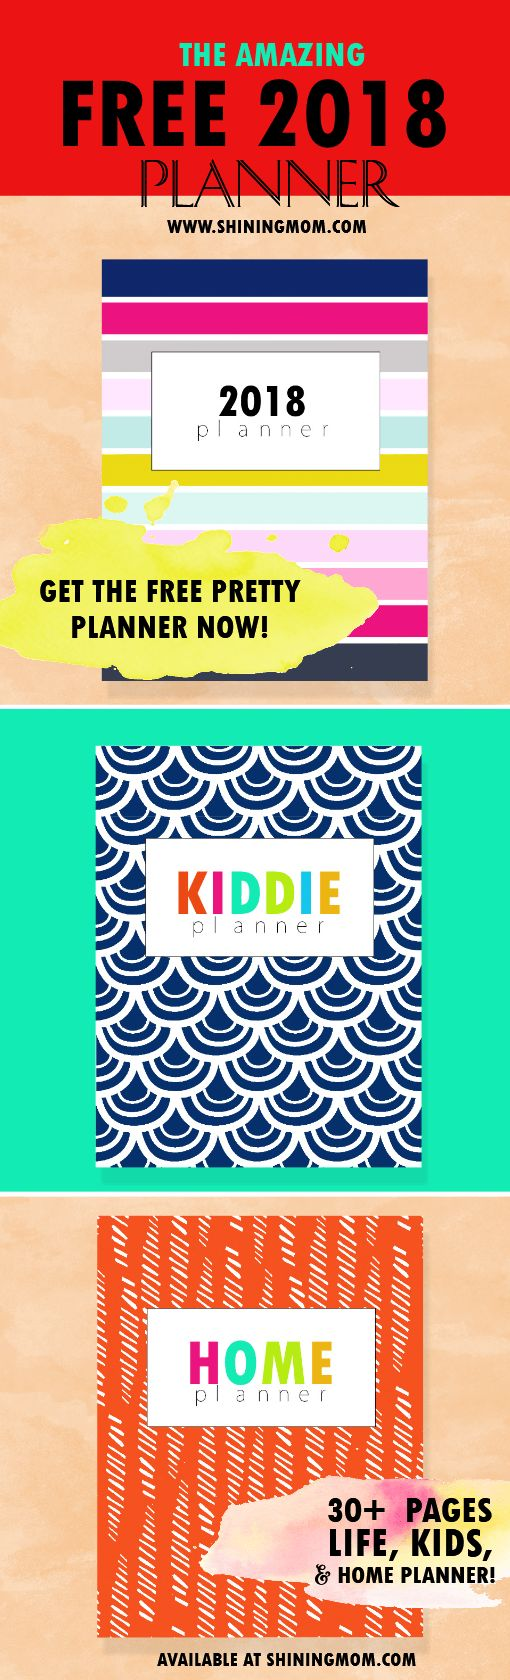 Grab this 2018 planner free printable to design your life! Have a great new year ahead! #2018planner #planner2018printable #planner2018 #freeplanner2018